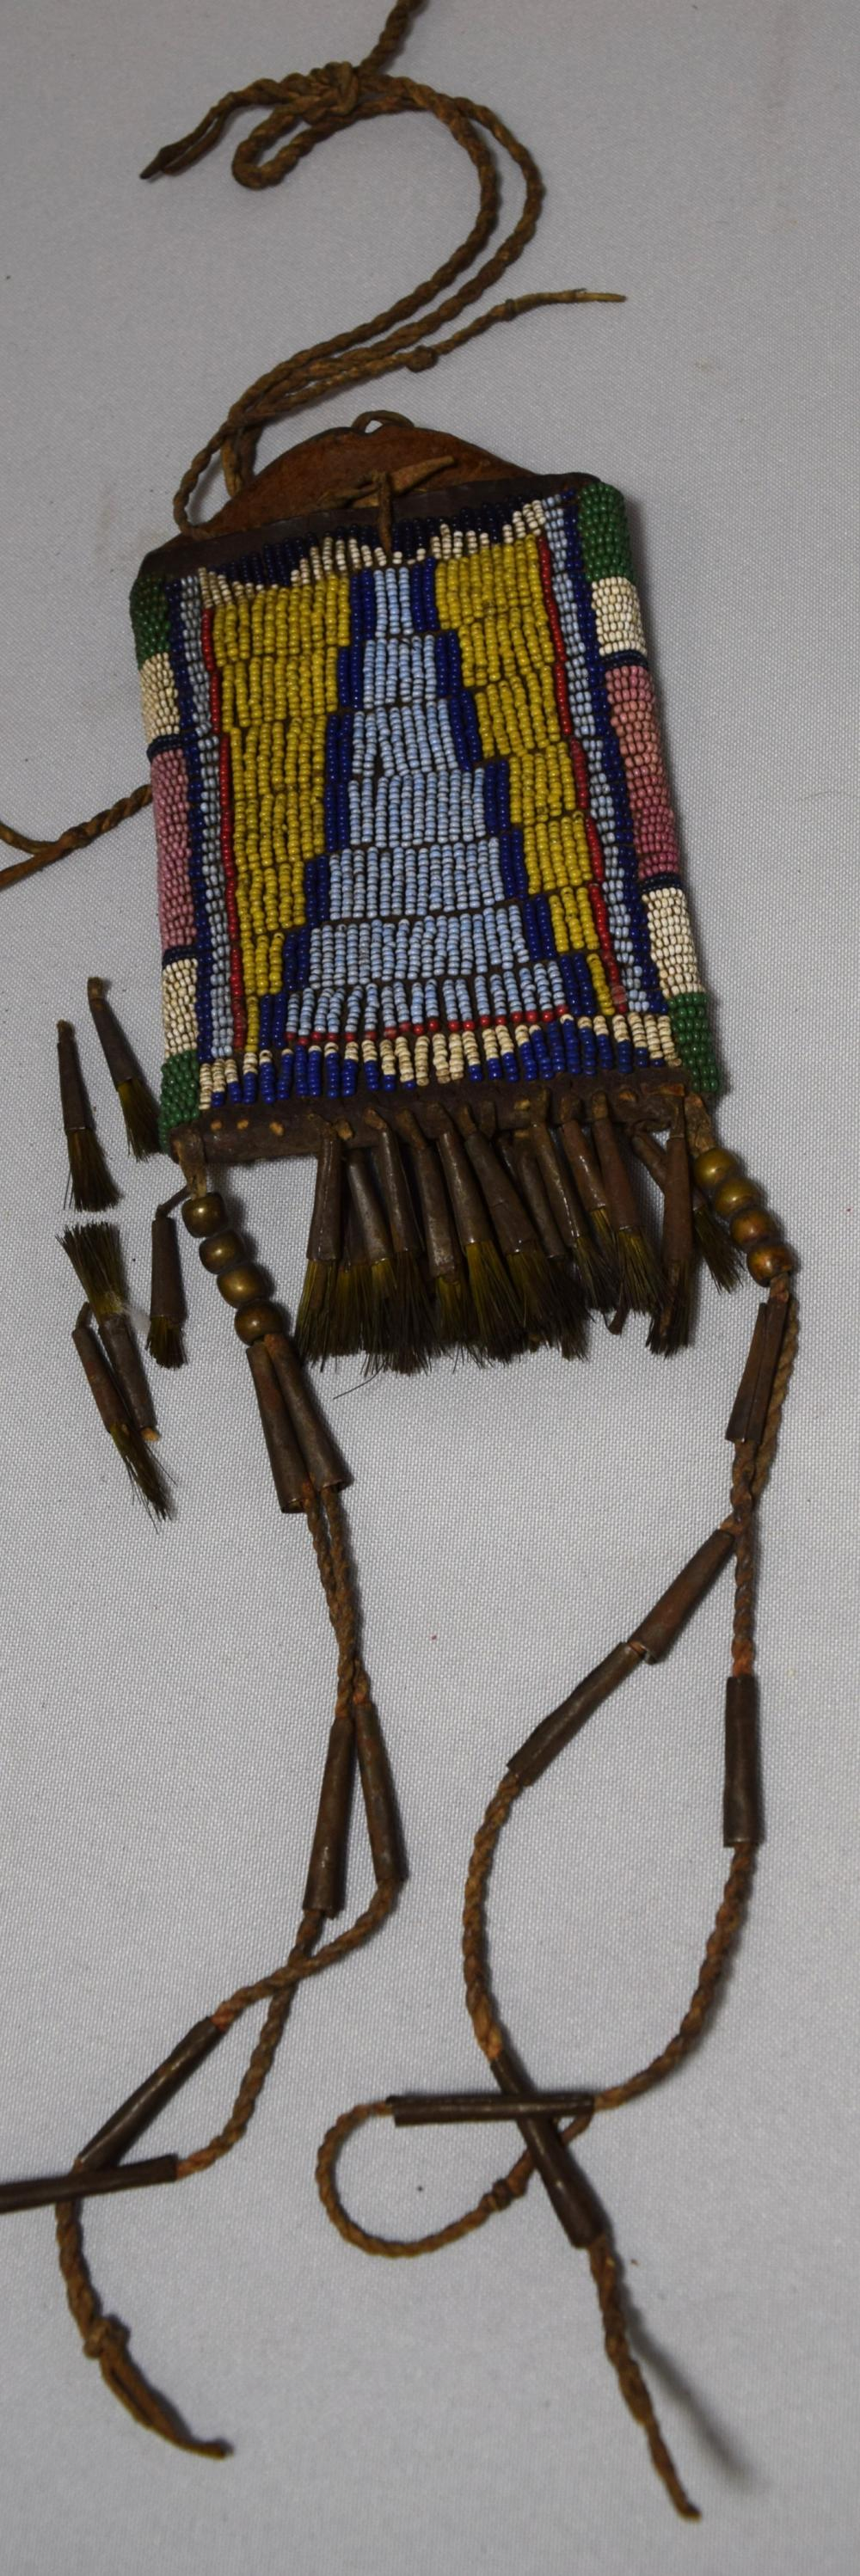 19TH C NATIVE AMERICAN INDIAN HAGING POUCH WITH HAIR TASSEL SUSPENSIONS: